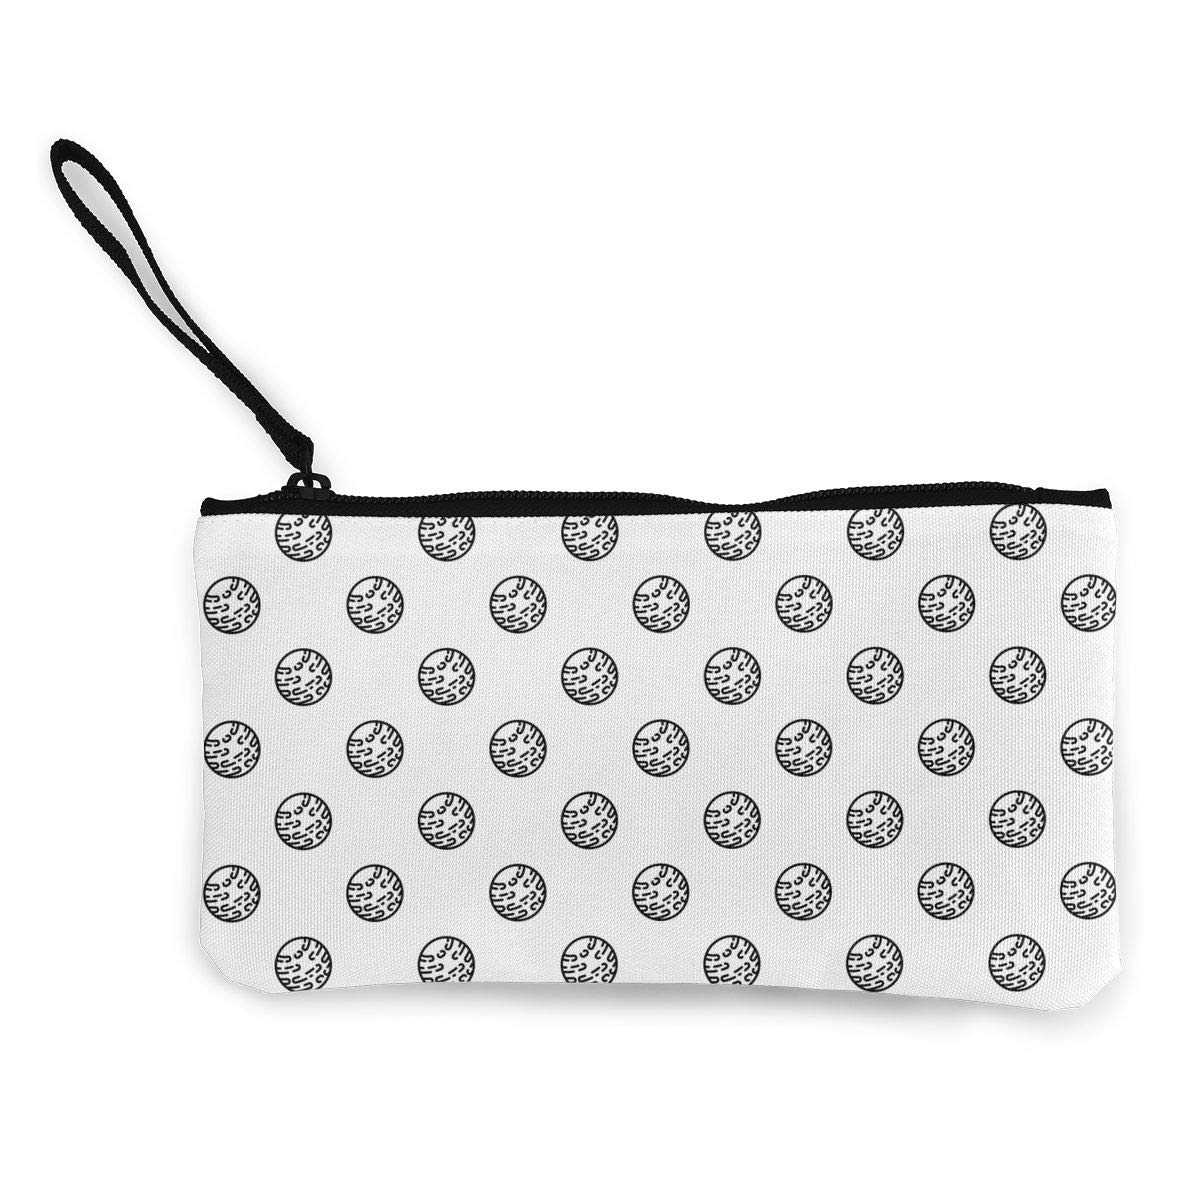 Cellphone Clutch Purse With Wrist Strap Mars Planet Pattern Womens Canvas Coin Wallet Zipper Small Purse Wallets